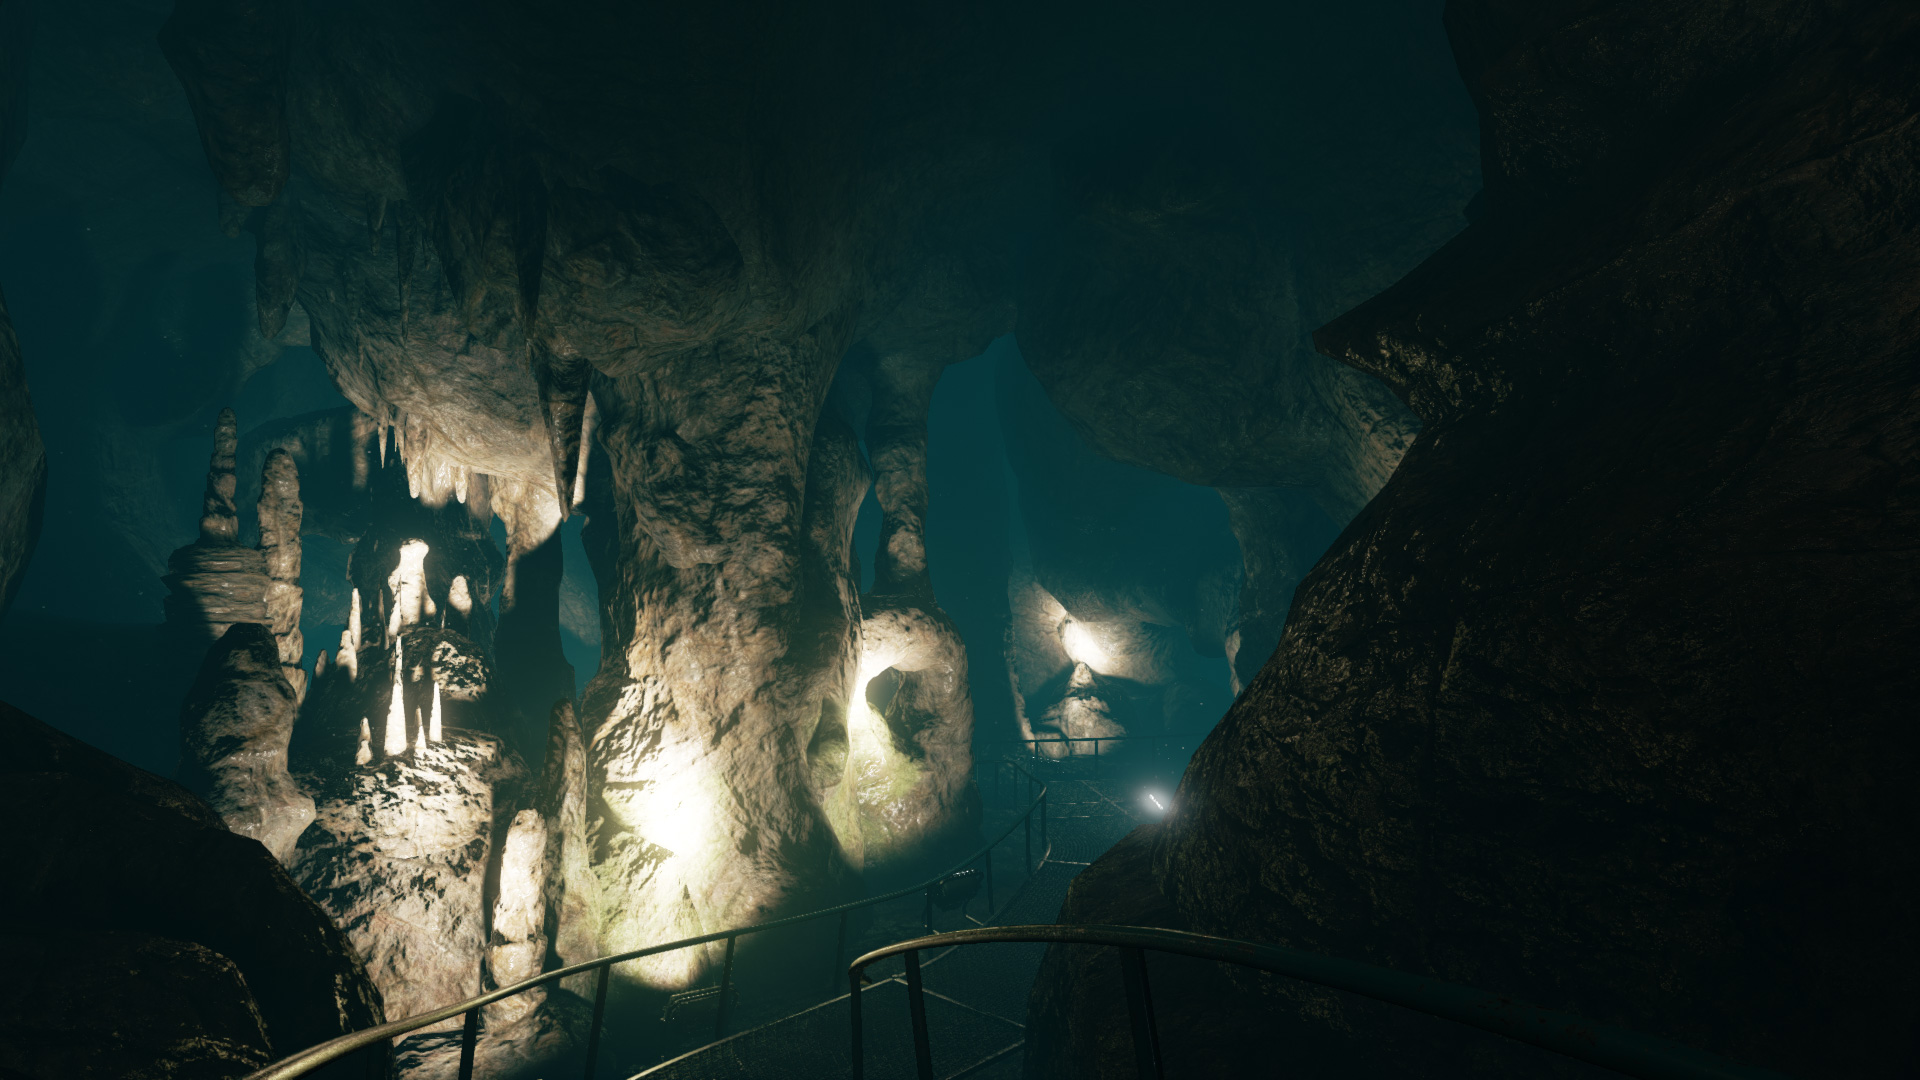 Flowstone Cave, and other news